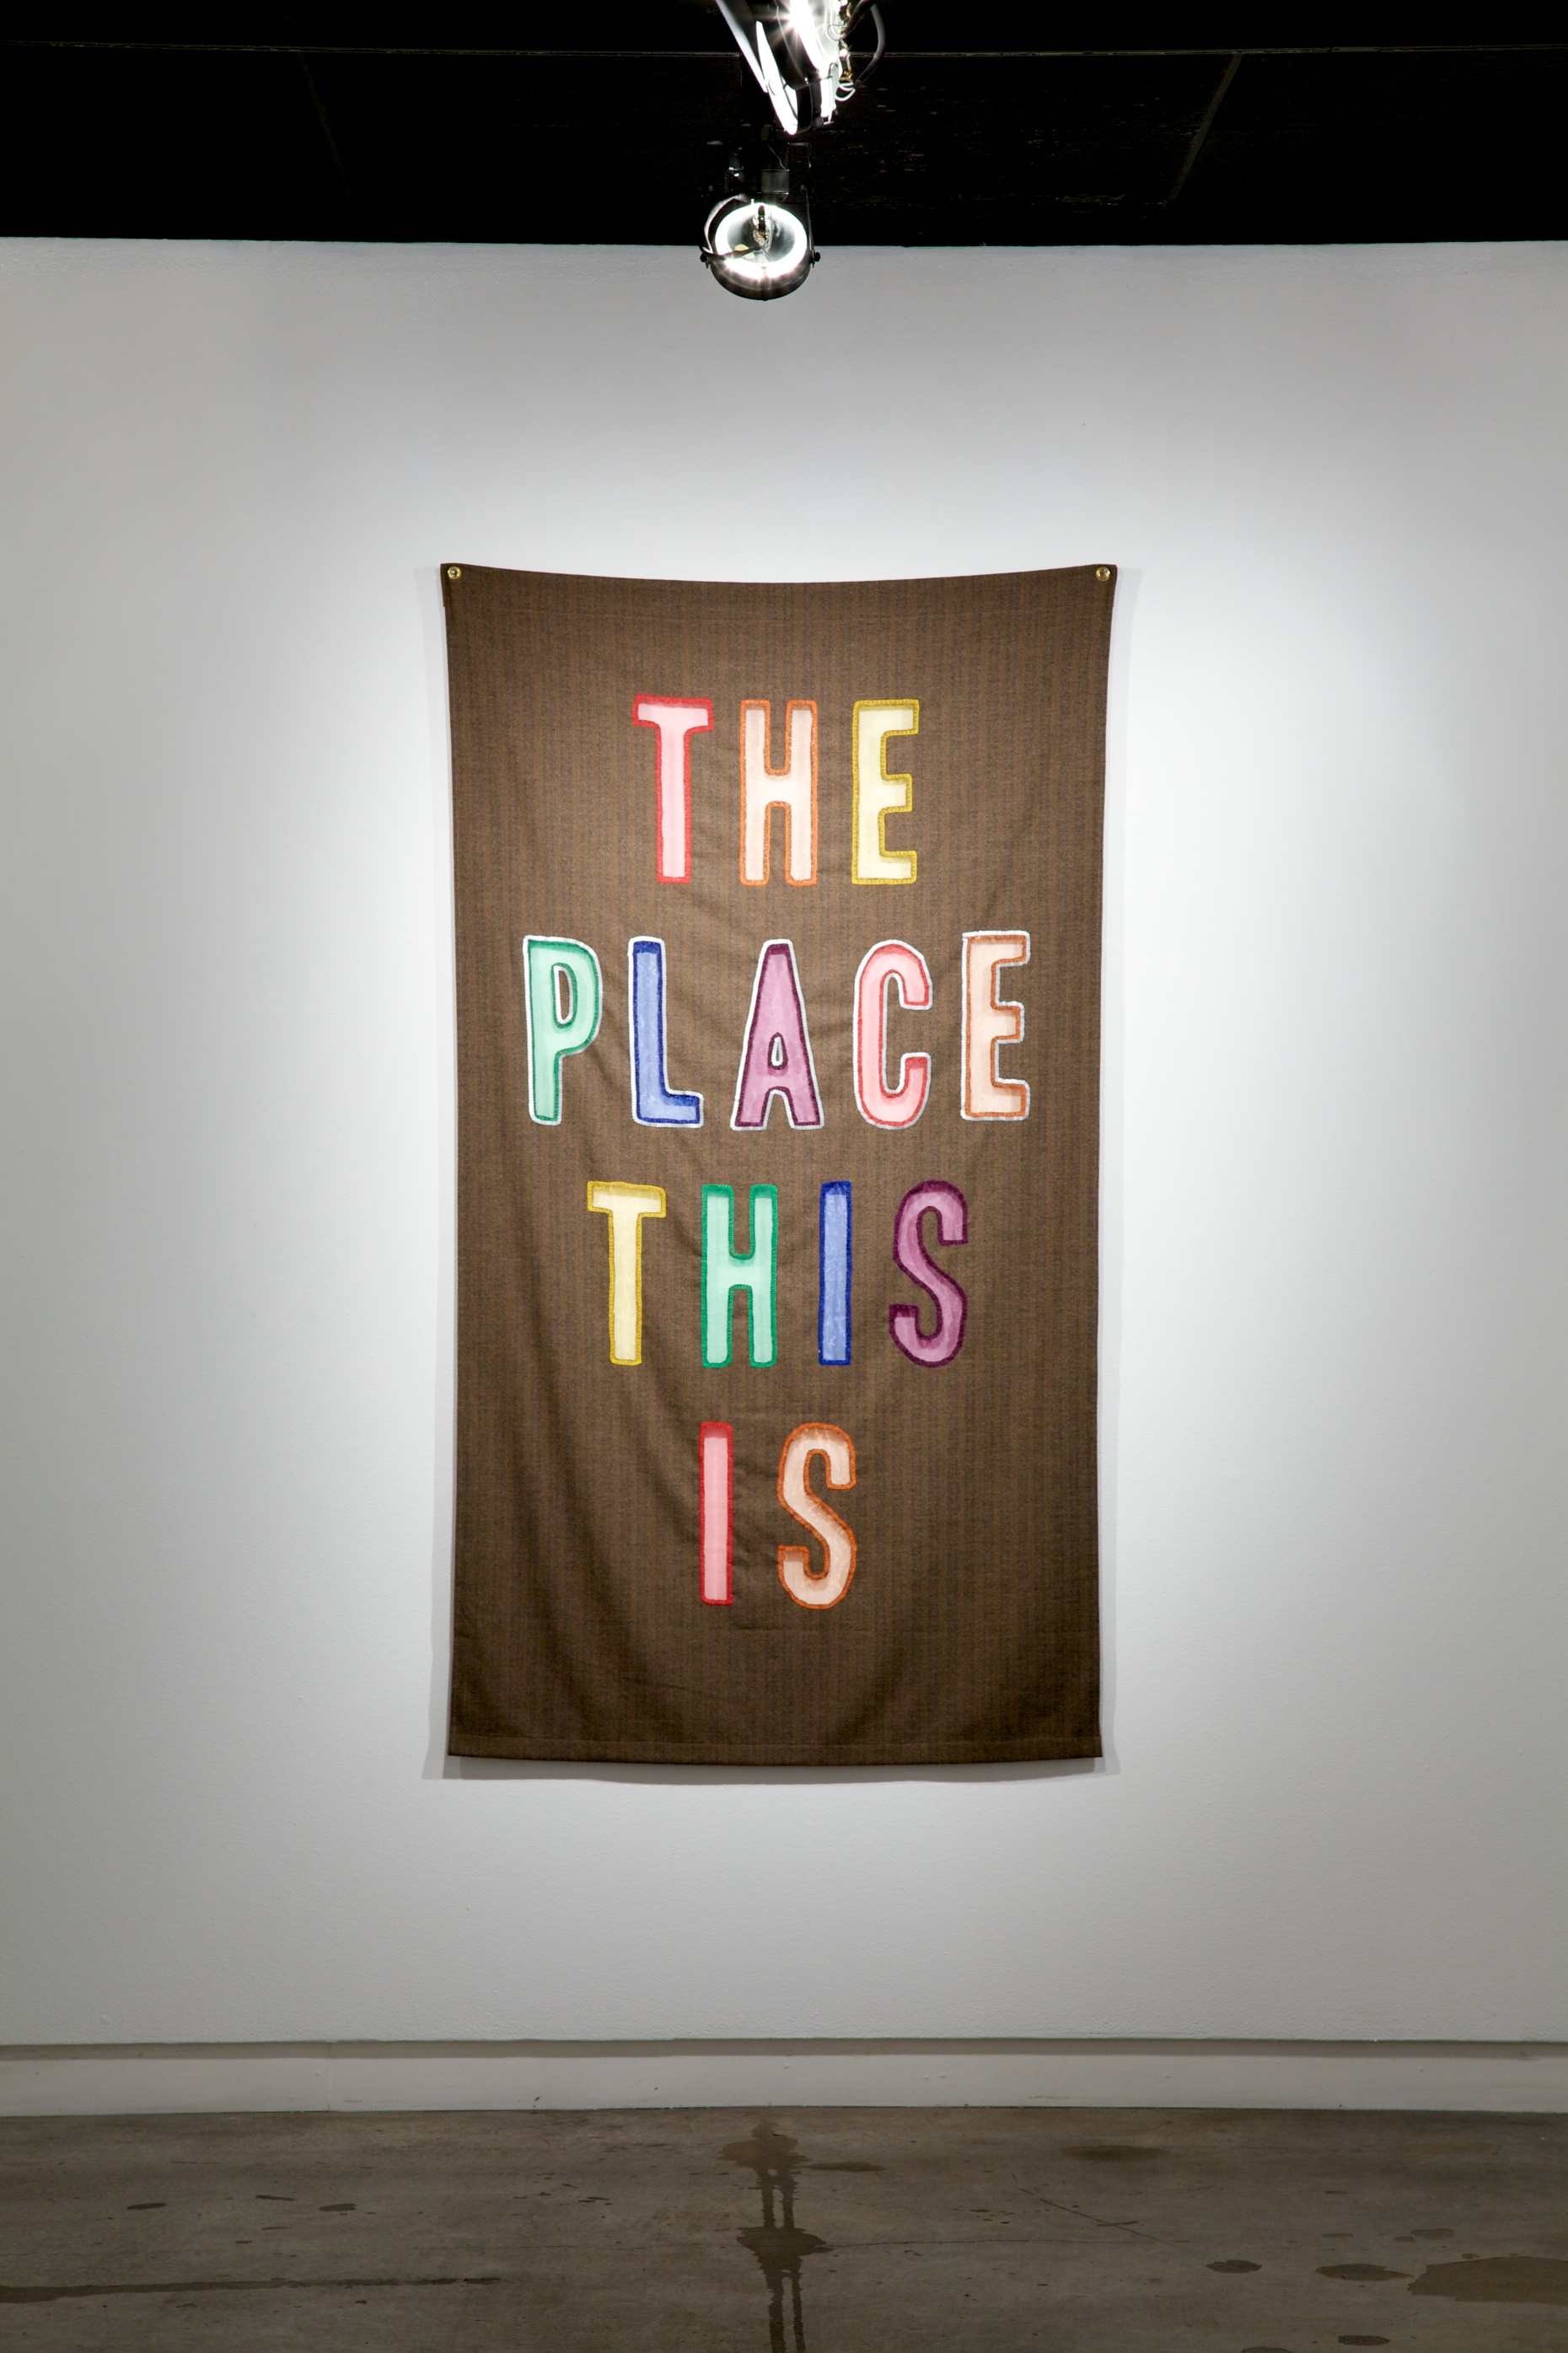 The Place This Is (2010)